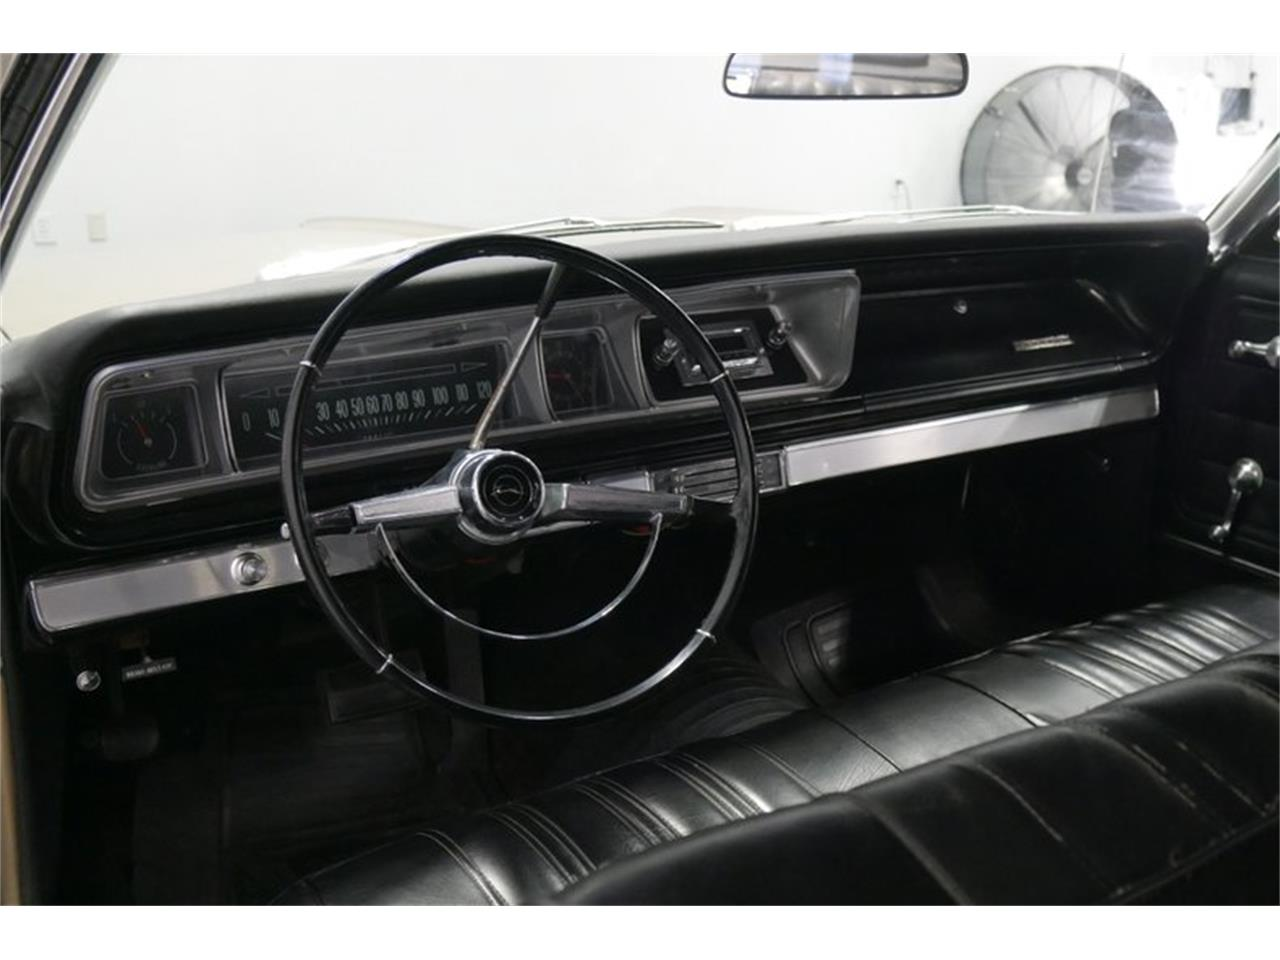 1966 Chevrolet Impala (CC-1321528) for sale in Lavergne, Tennessee